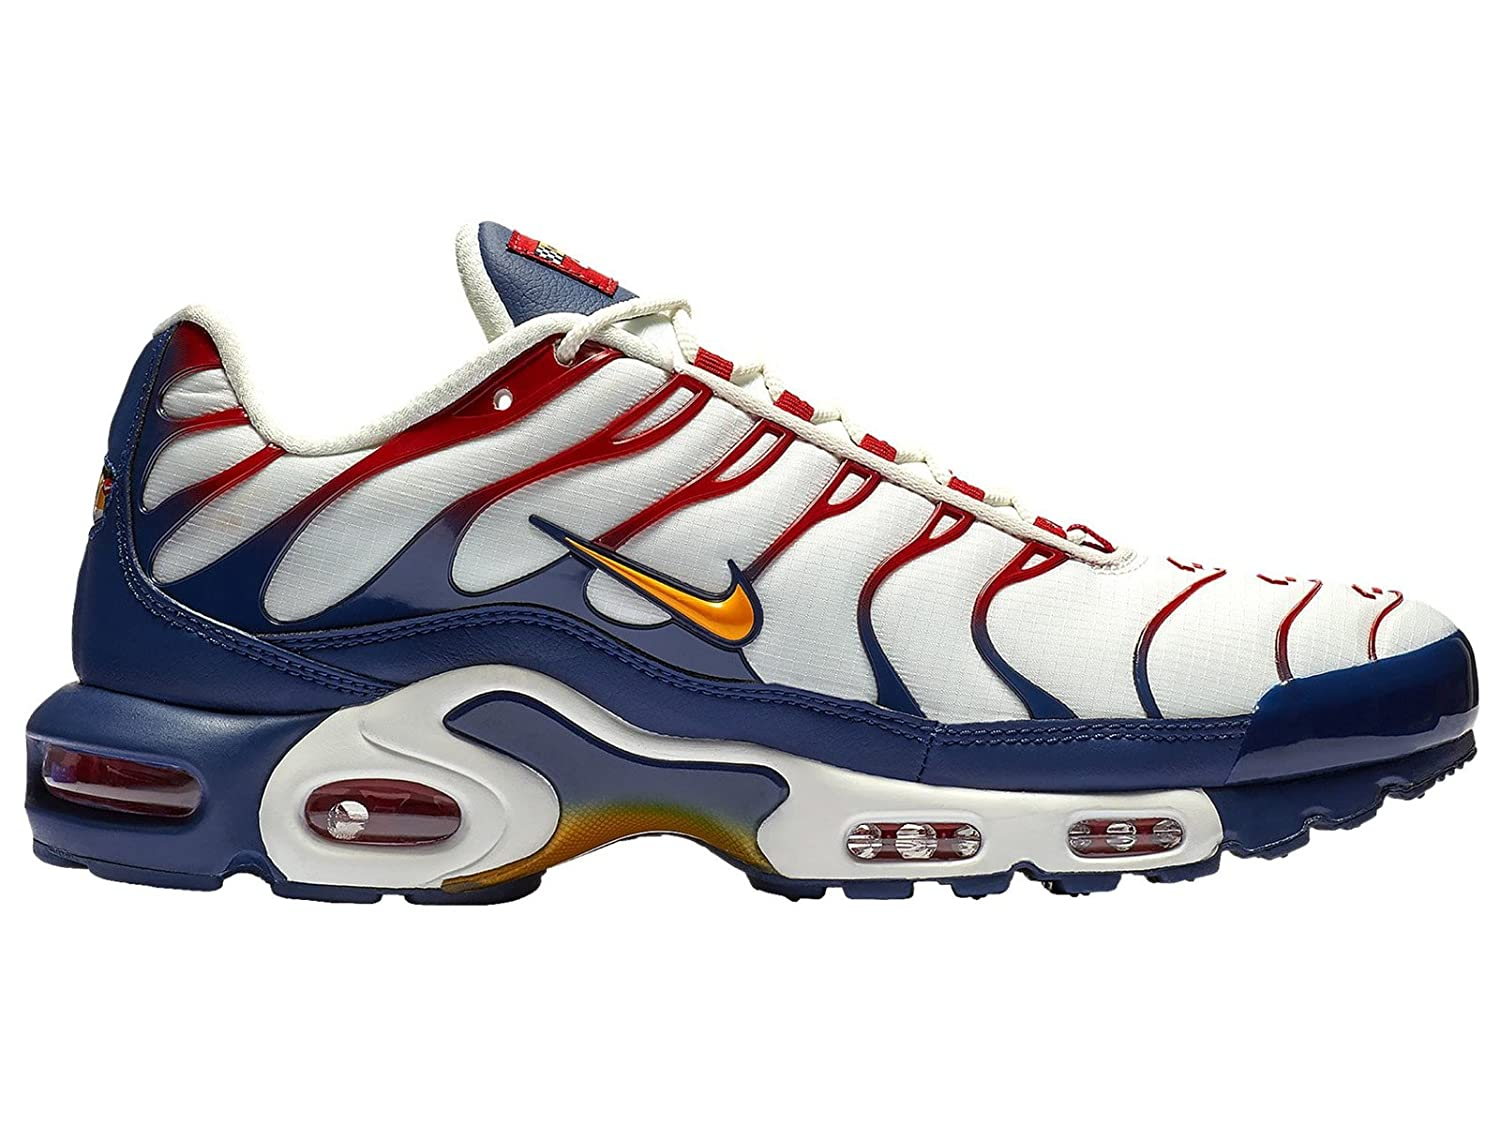 low priced 03404 ccd39 Amazon.com   Nike Men s Air Max Plus Sail University Gold Midnight Navy    Nautical Pack Nylon Casual Shoes 8 (D) M US   Fashion Sneakers